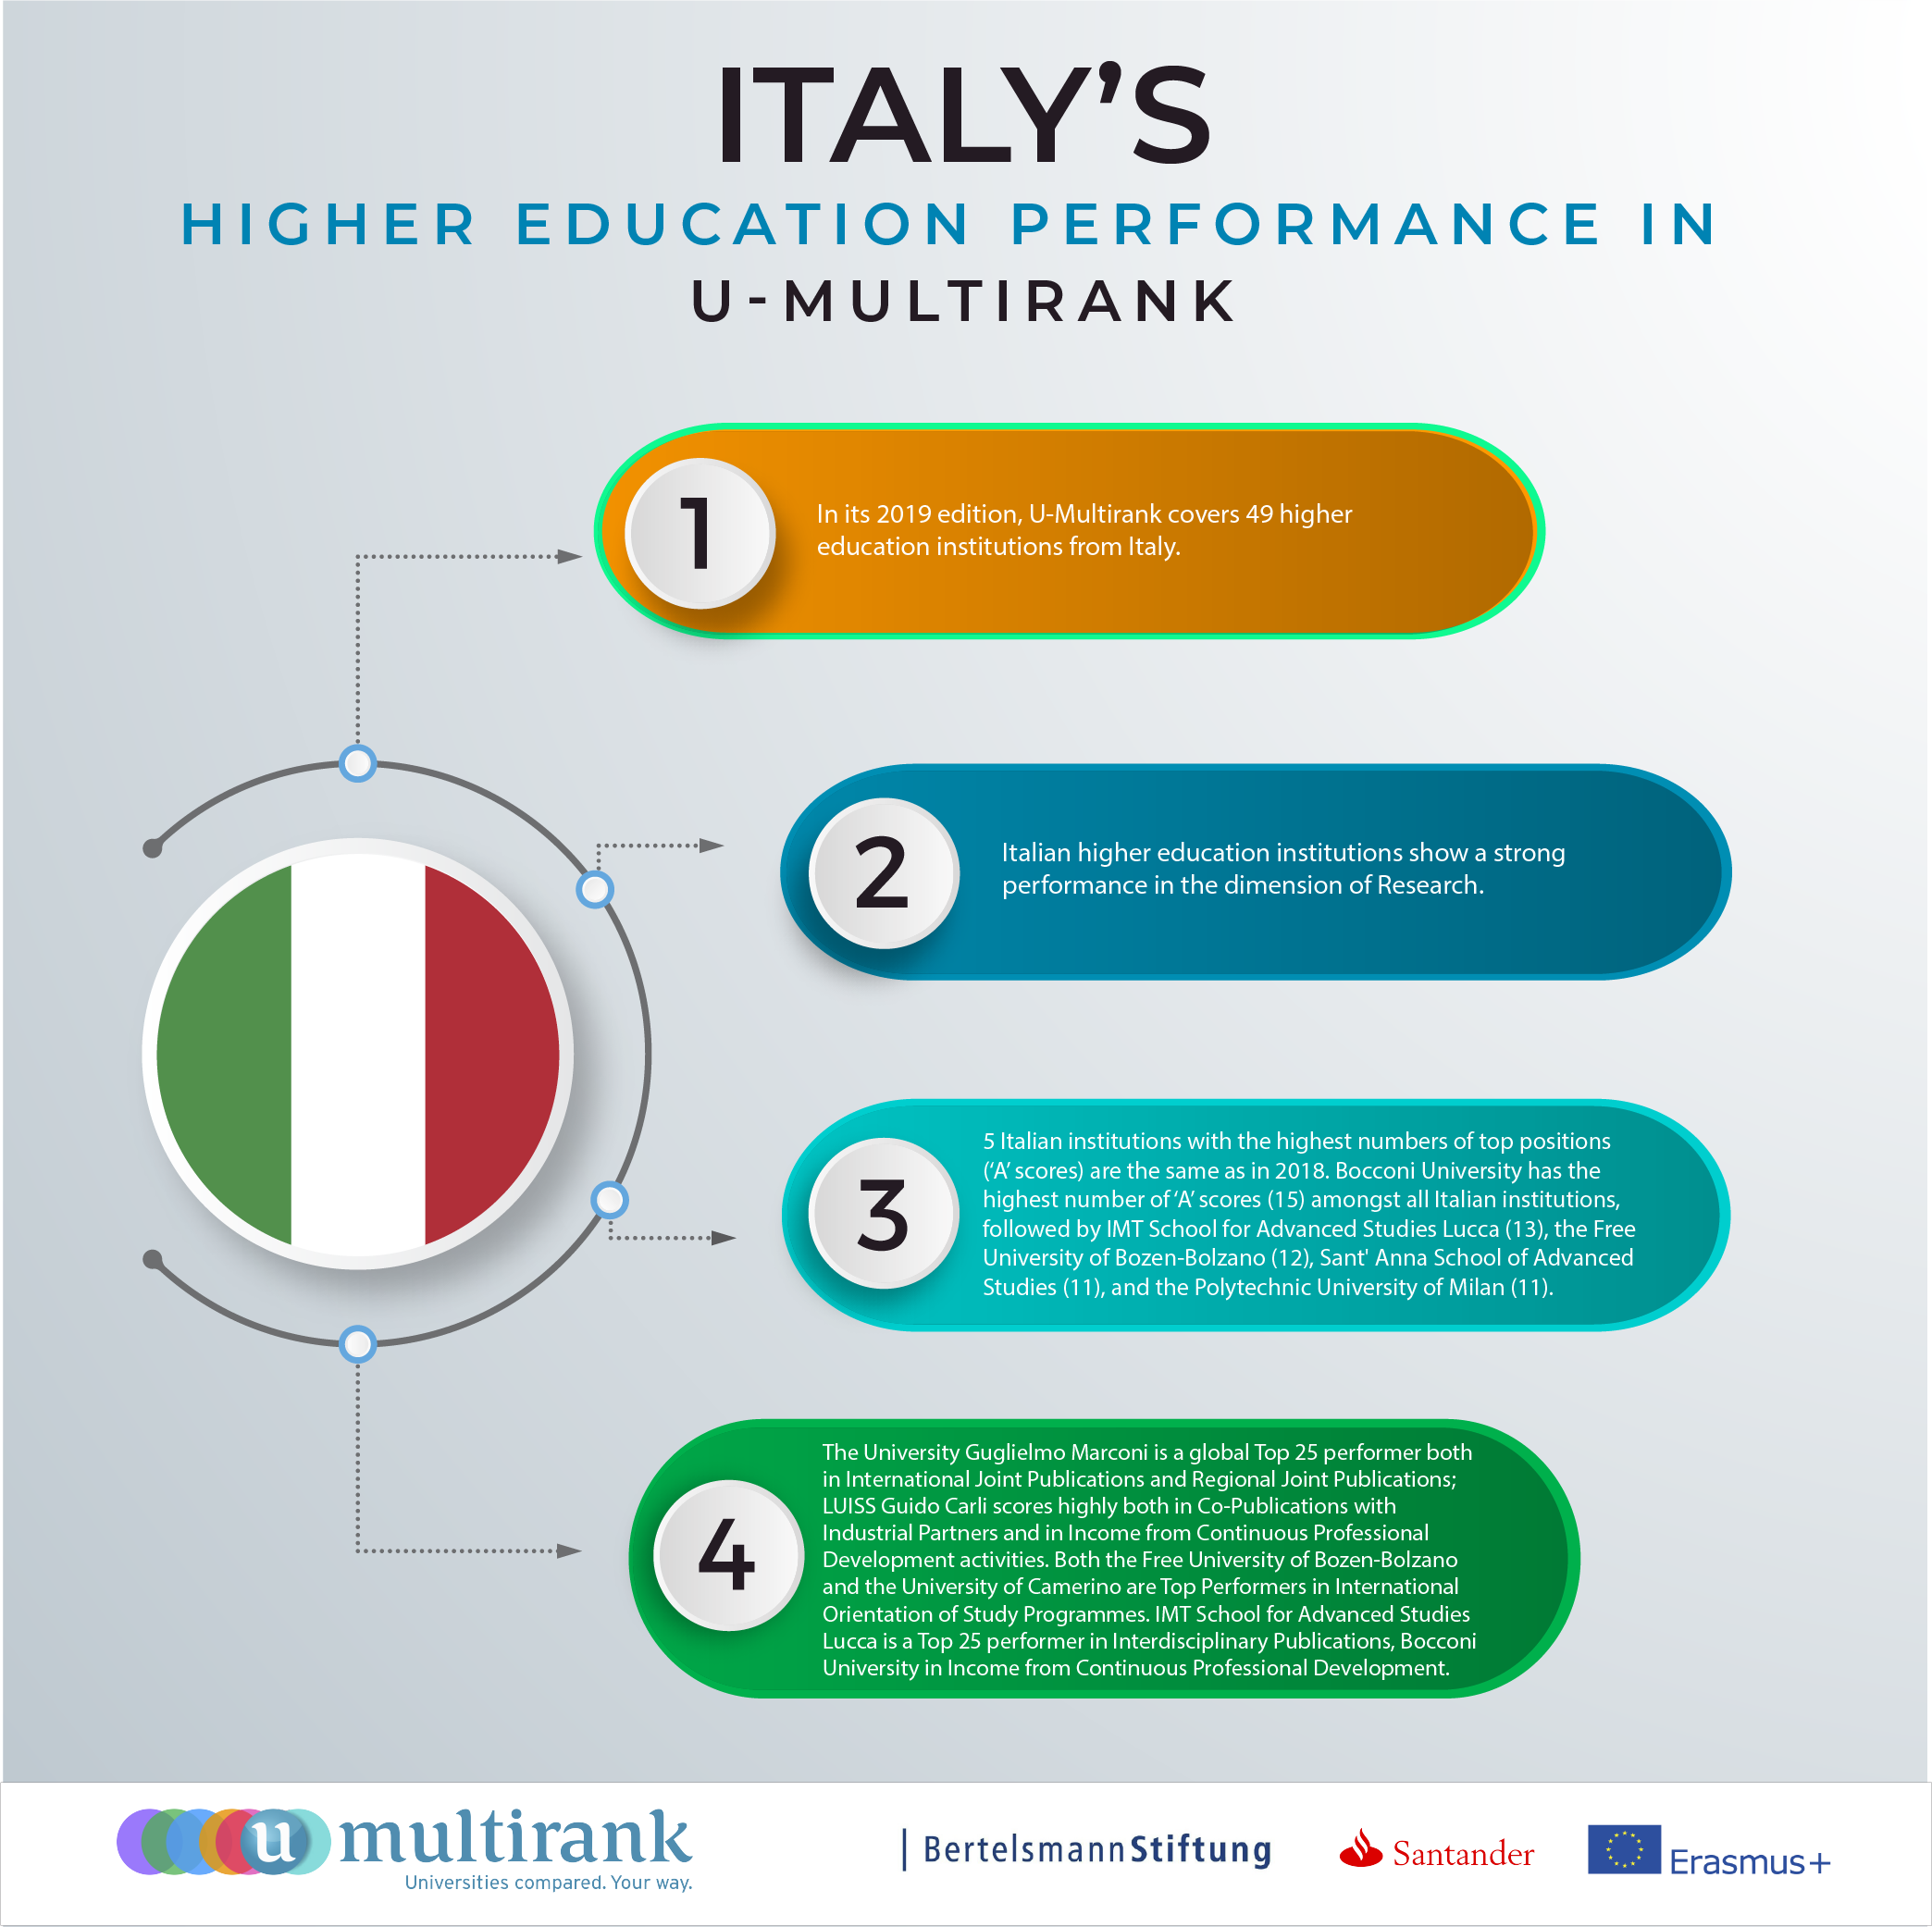 Italy's Higher Education Performance in U-Multirank